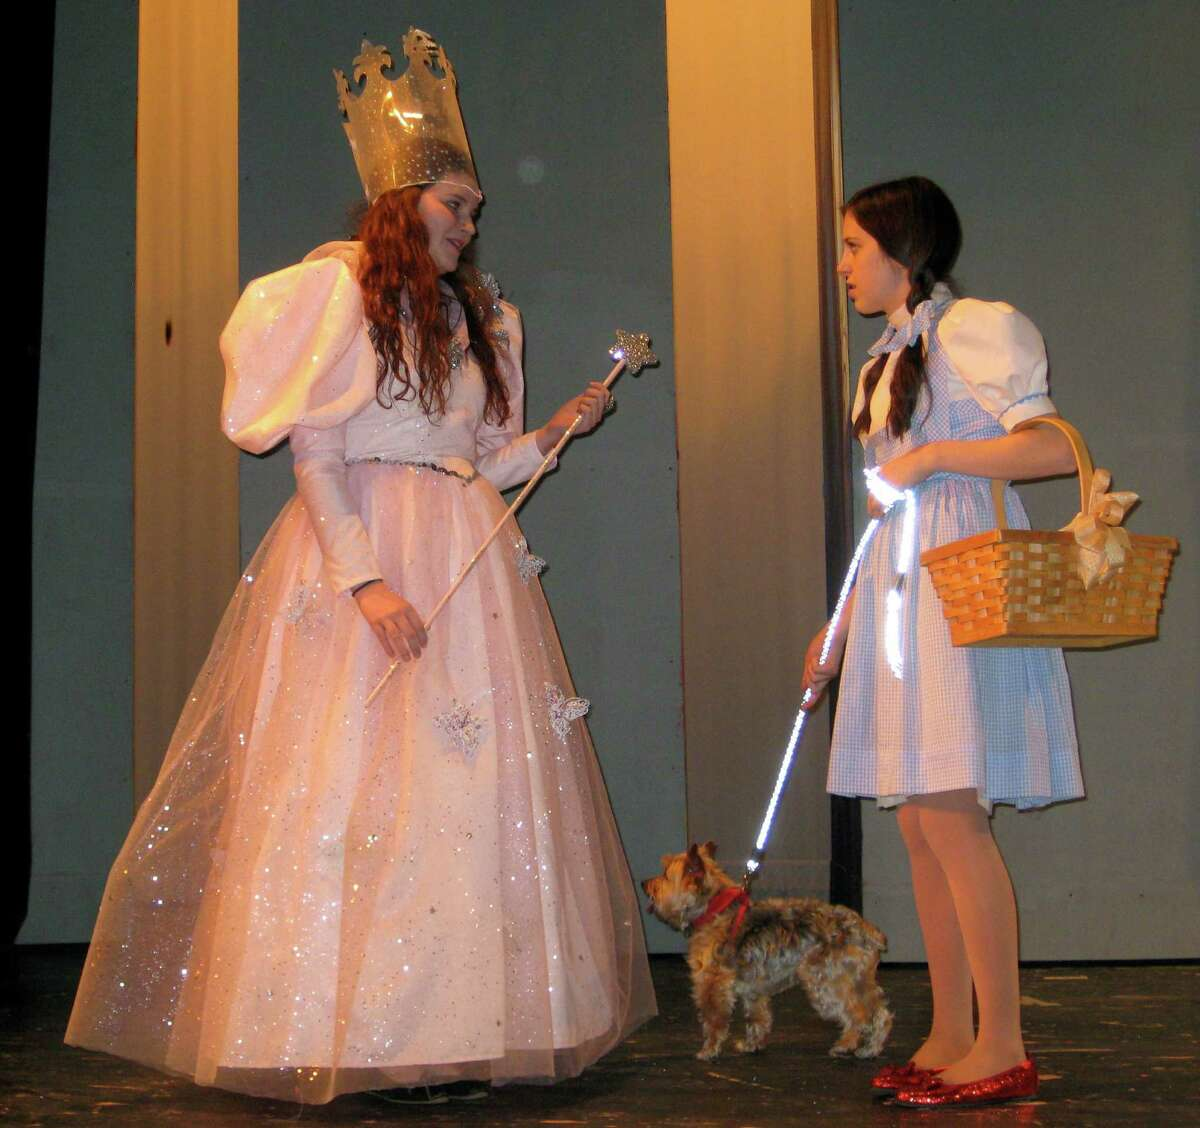 """Erin Valade, right, stars as Dorothy, and Katie Middleton plays Glinda the good witch in this rehearsal scene from Fairfield Ludlowe High School's production of """"The Wizard of Oz."""" The show is slated Friday, April 25 and Saturday, April 26."""